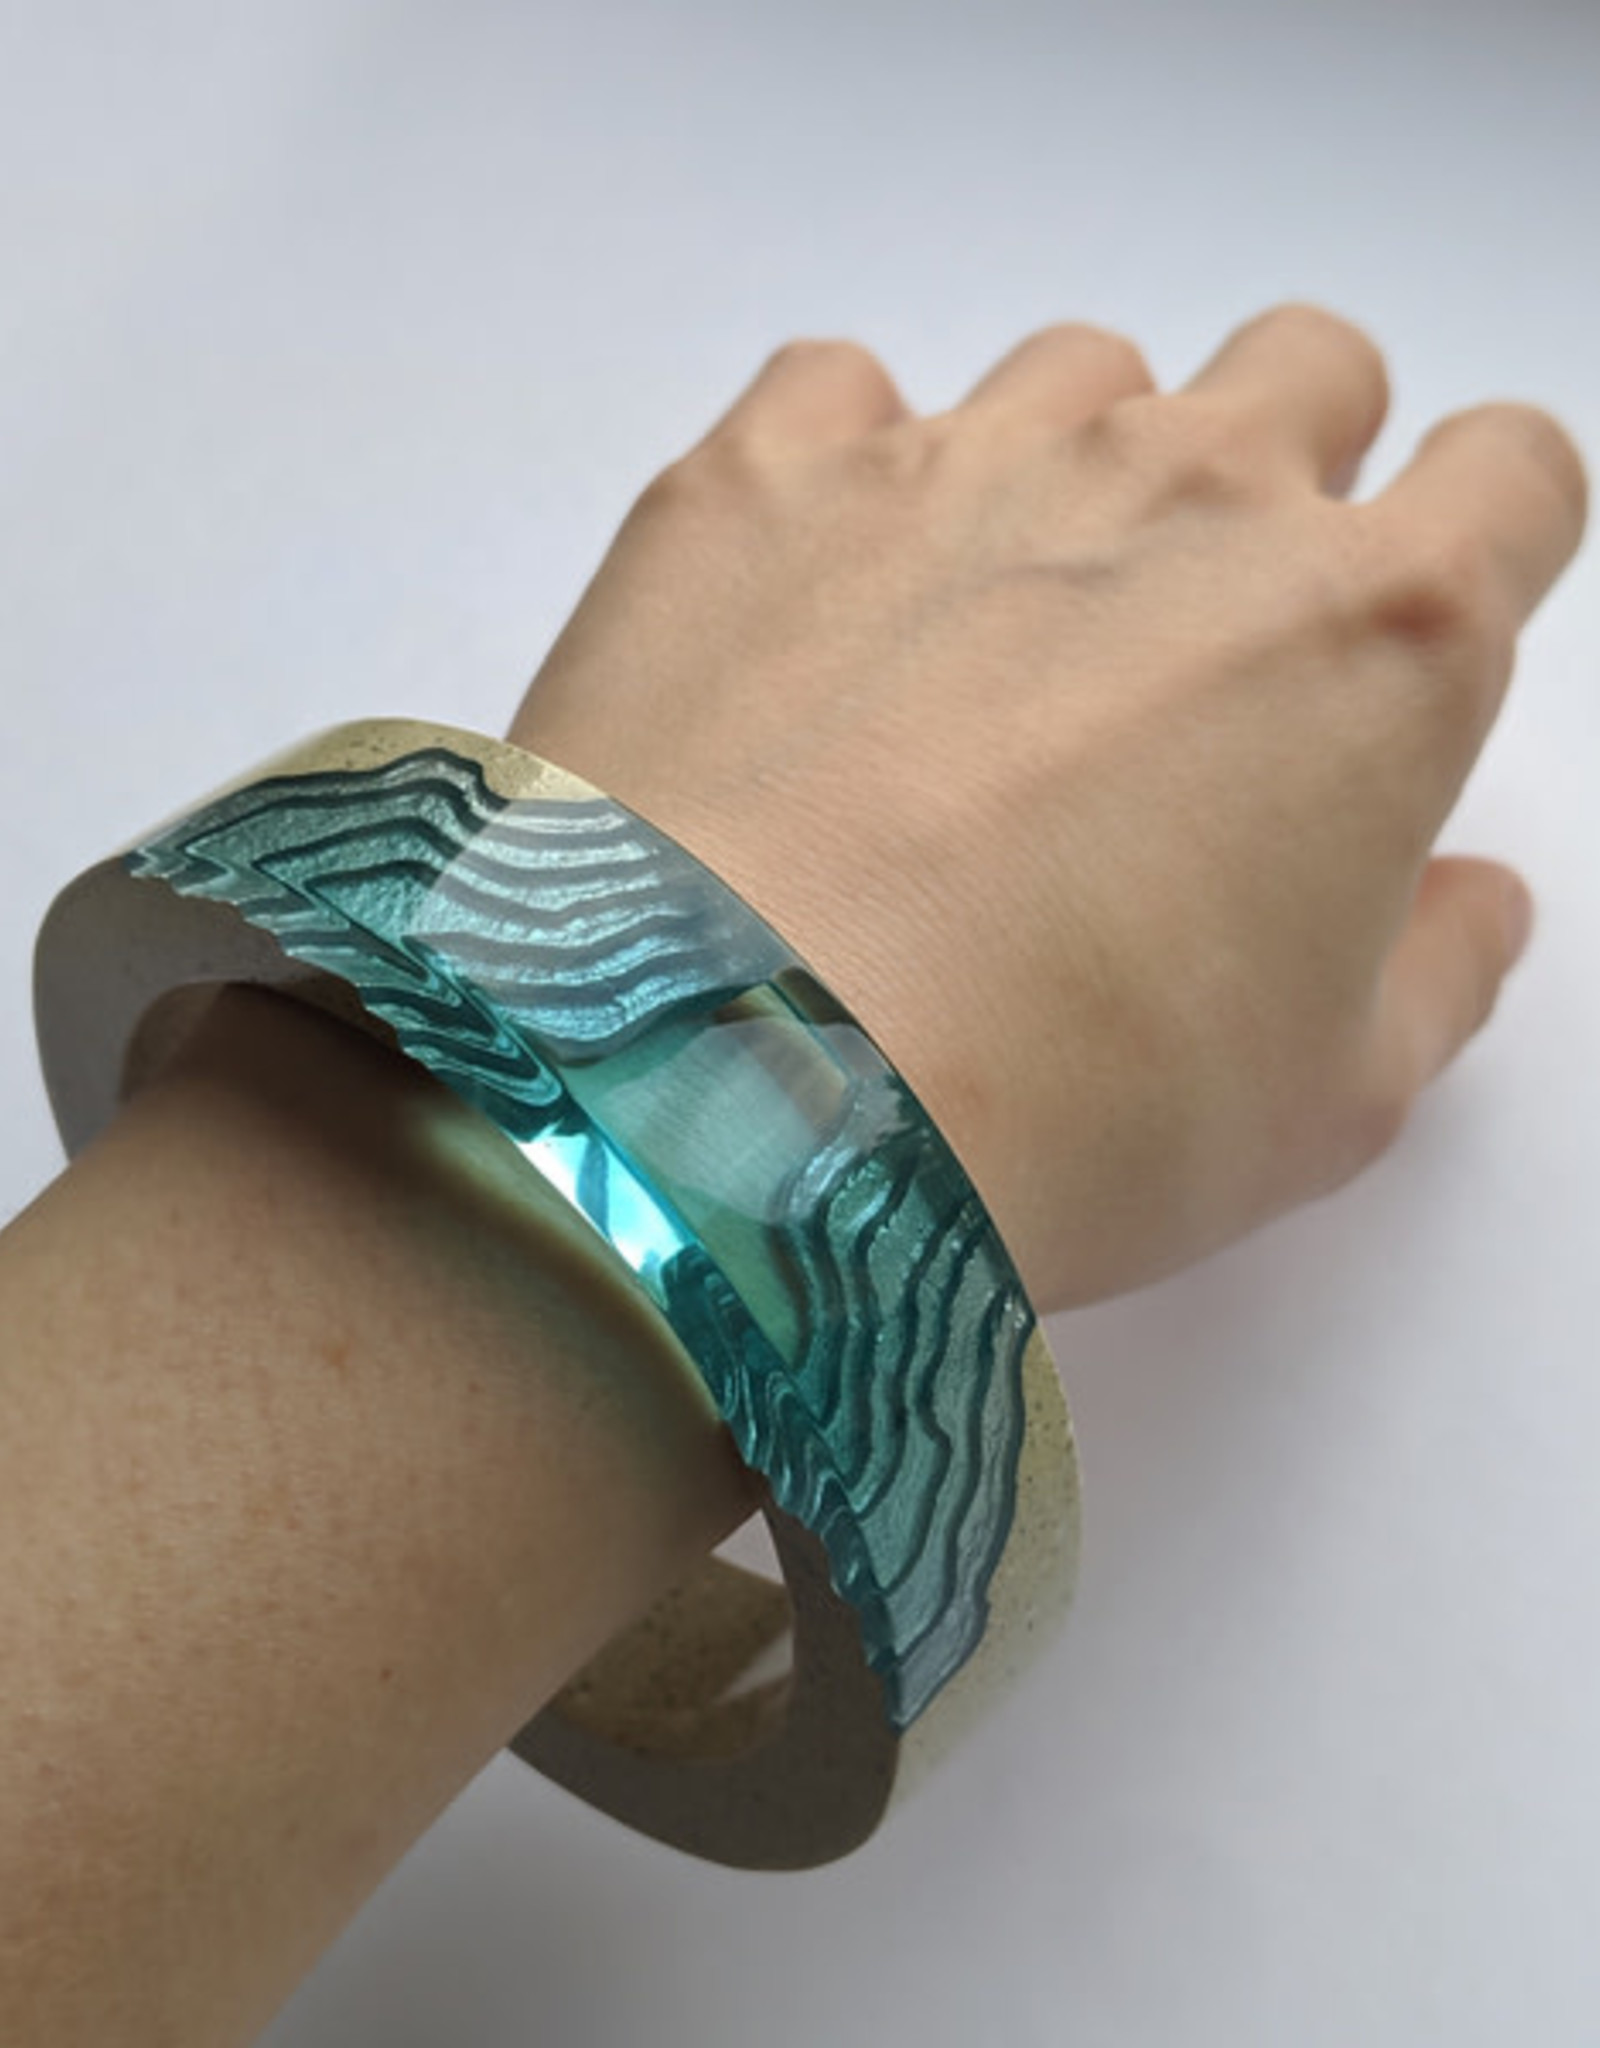 BOLDB 134000004 ESTUARY AQUA BANGLE LG